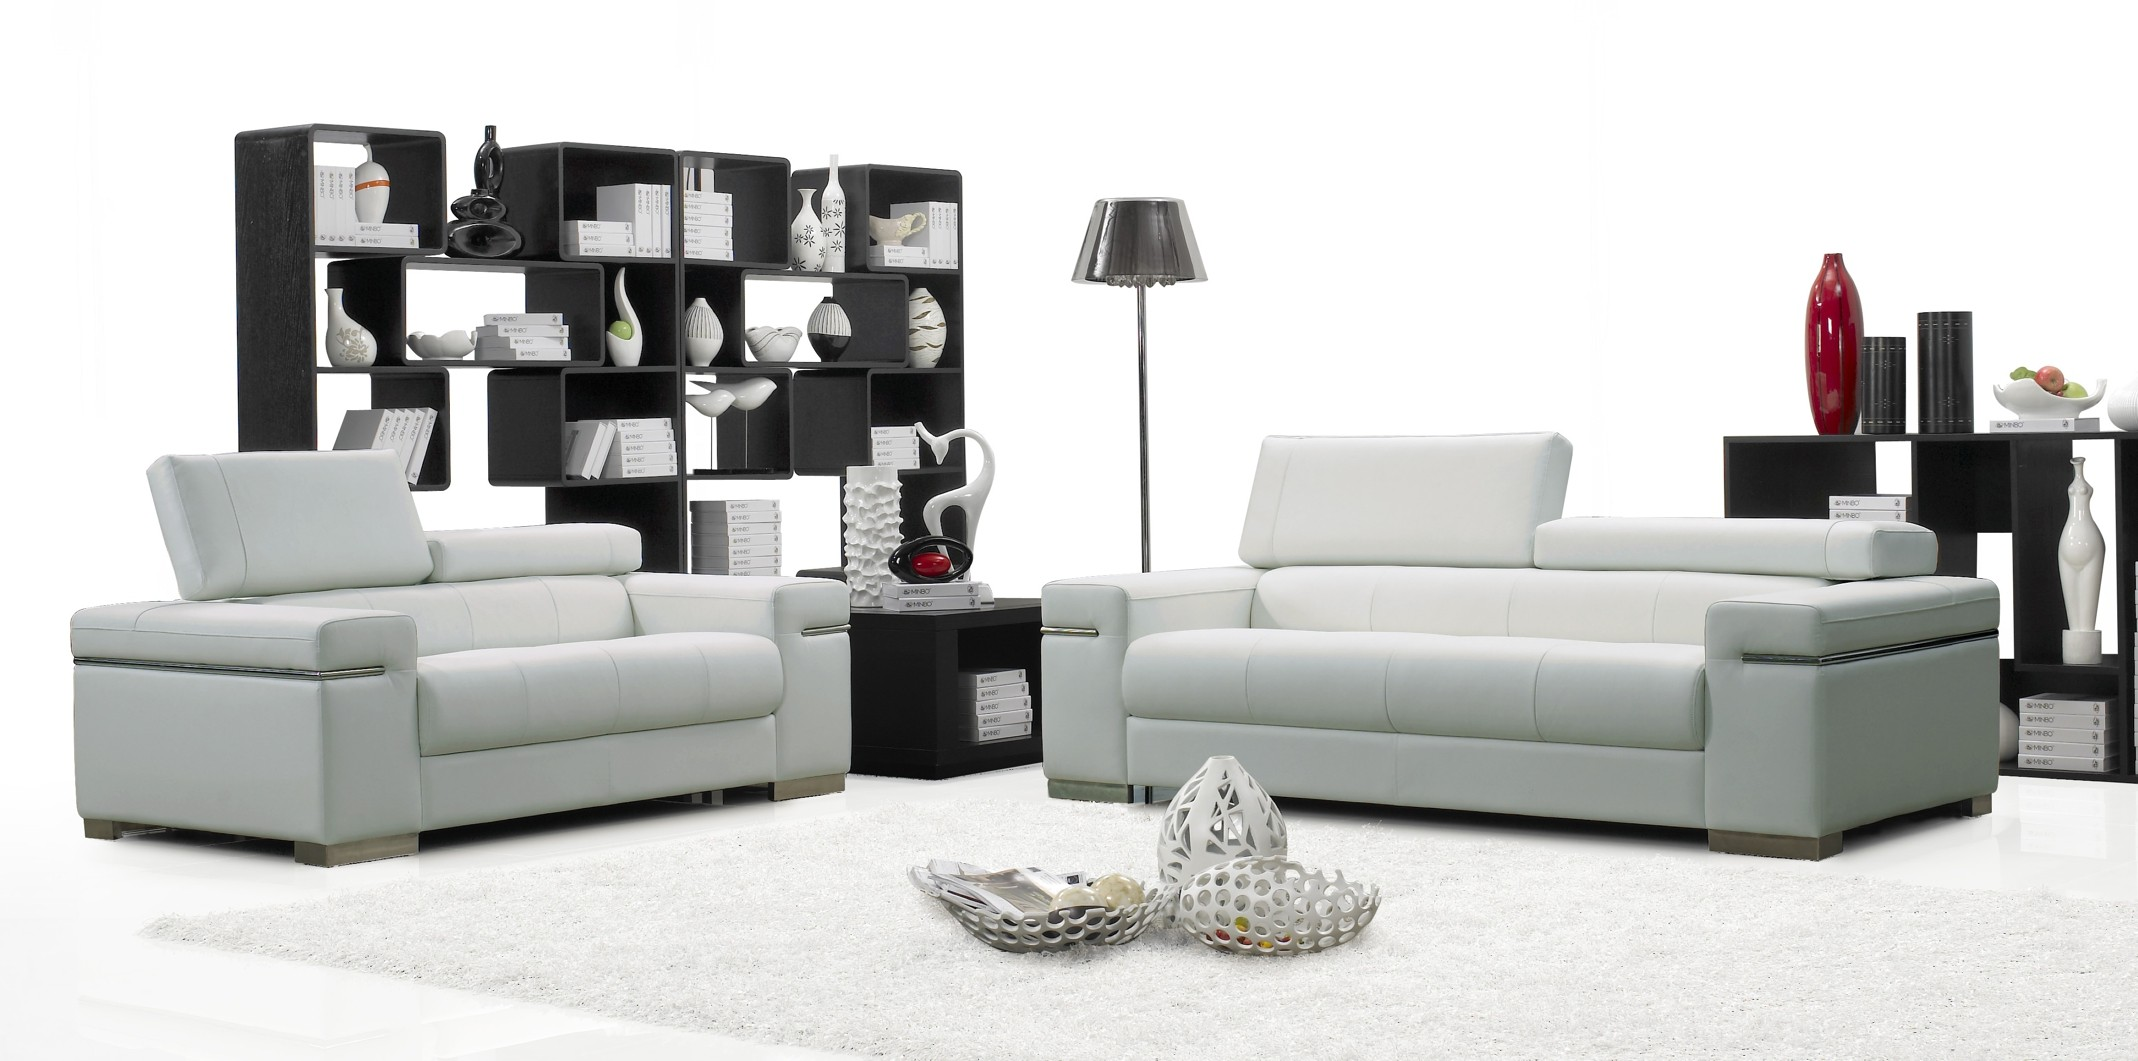 True modern furniture online homesfeed for In design furniture